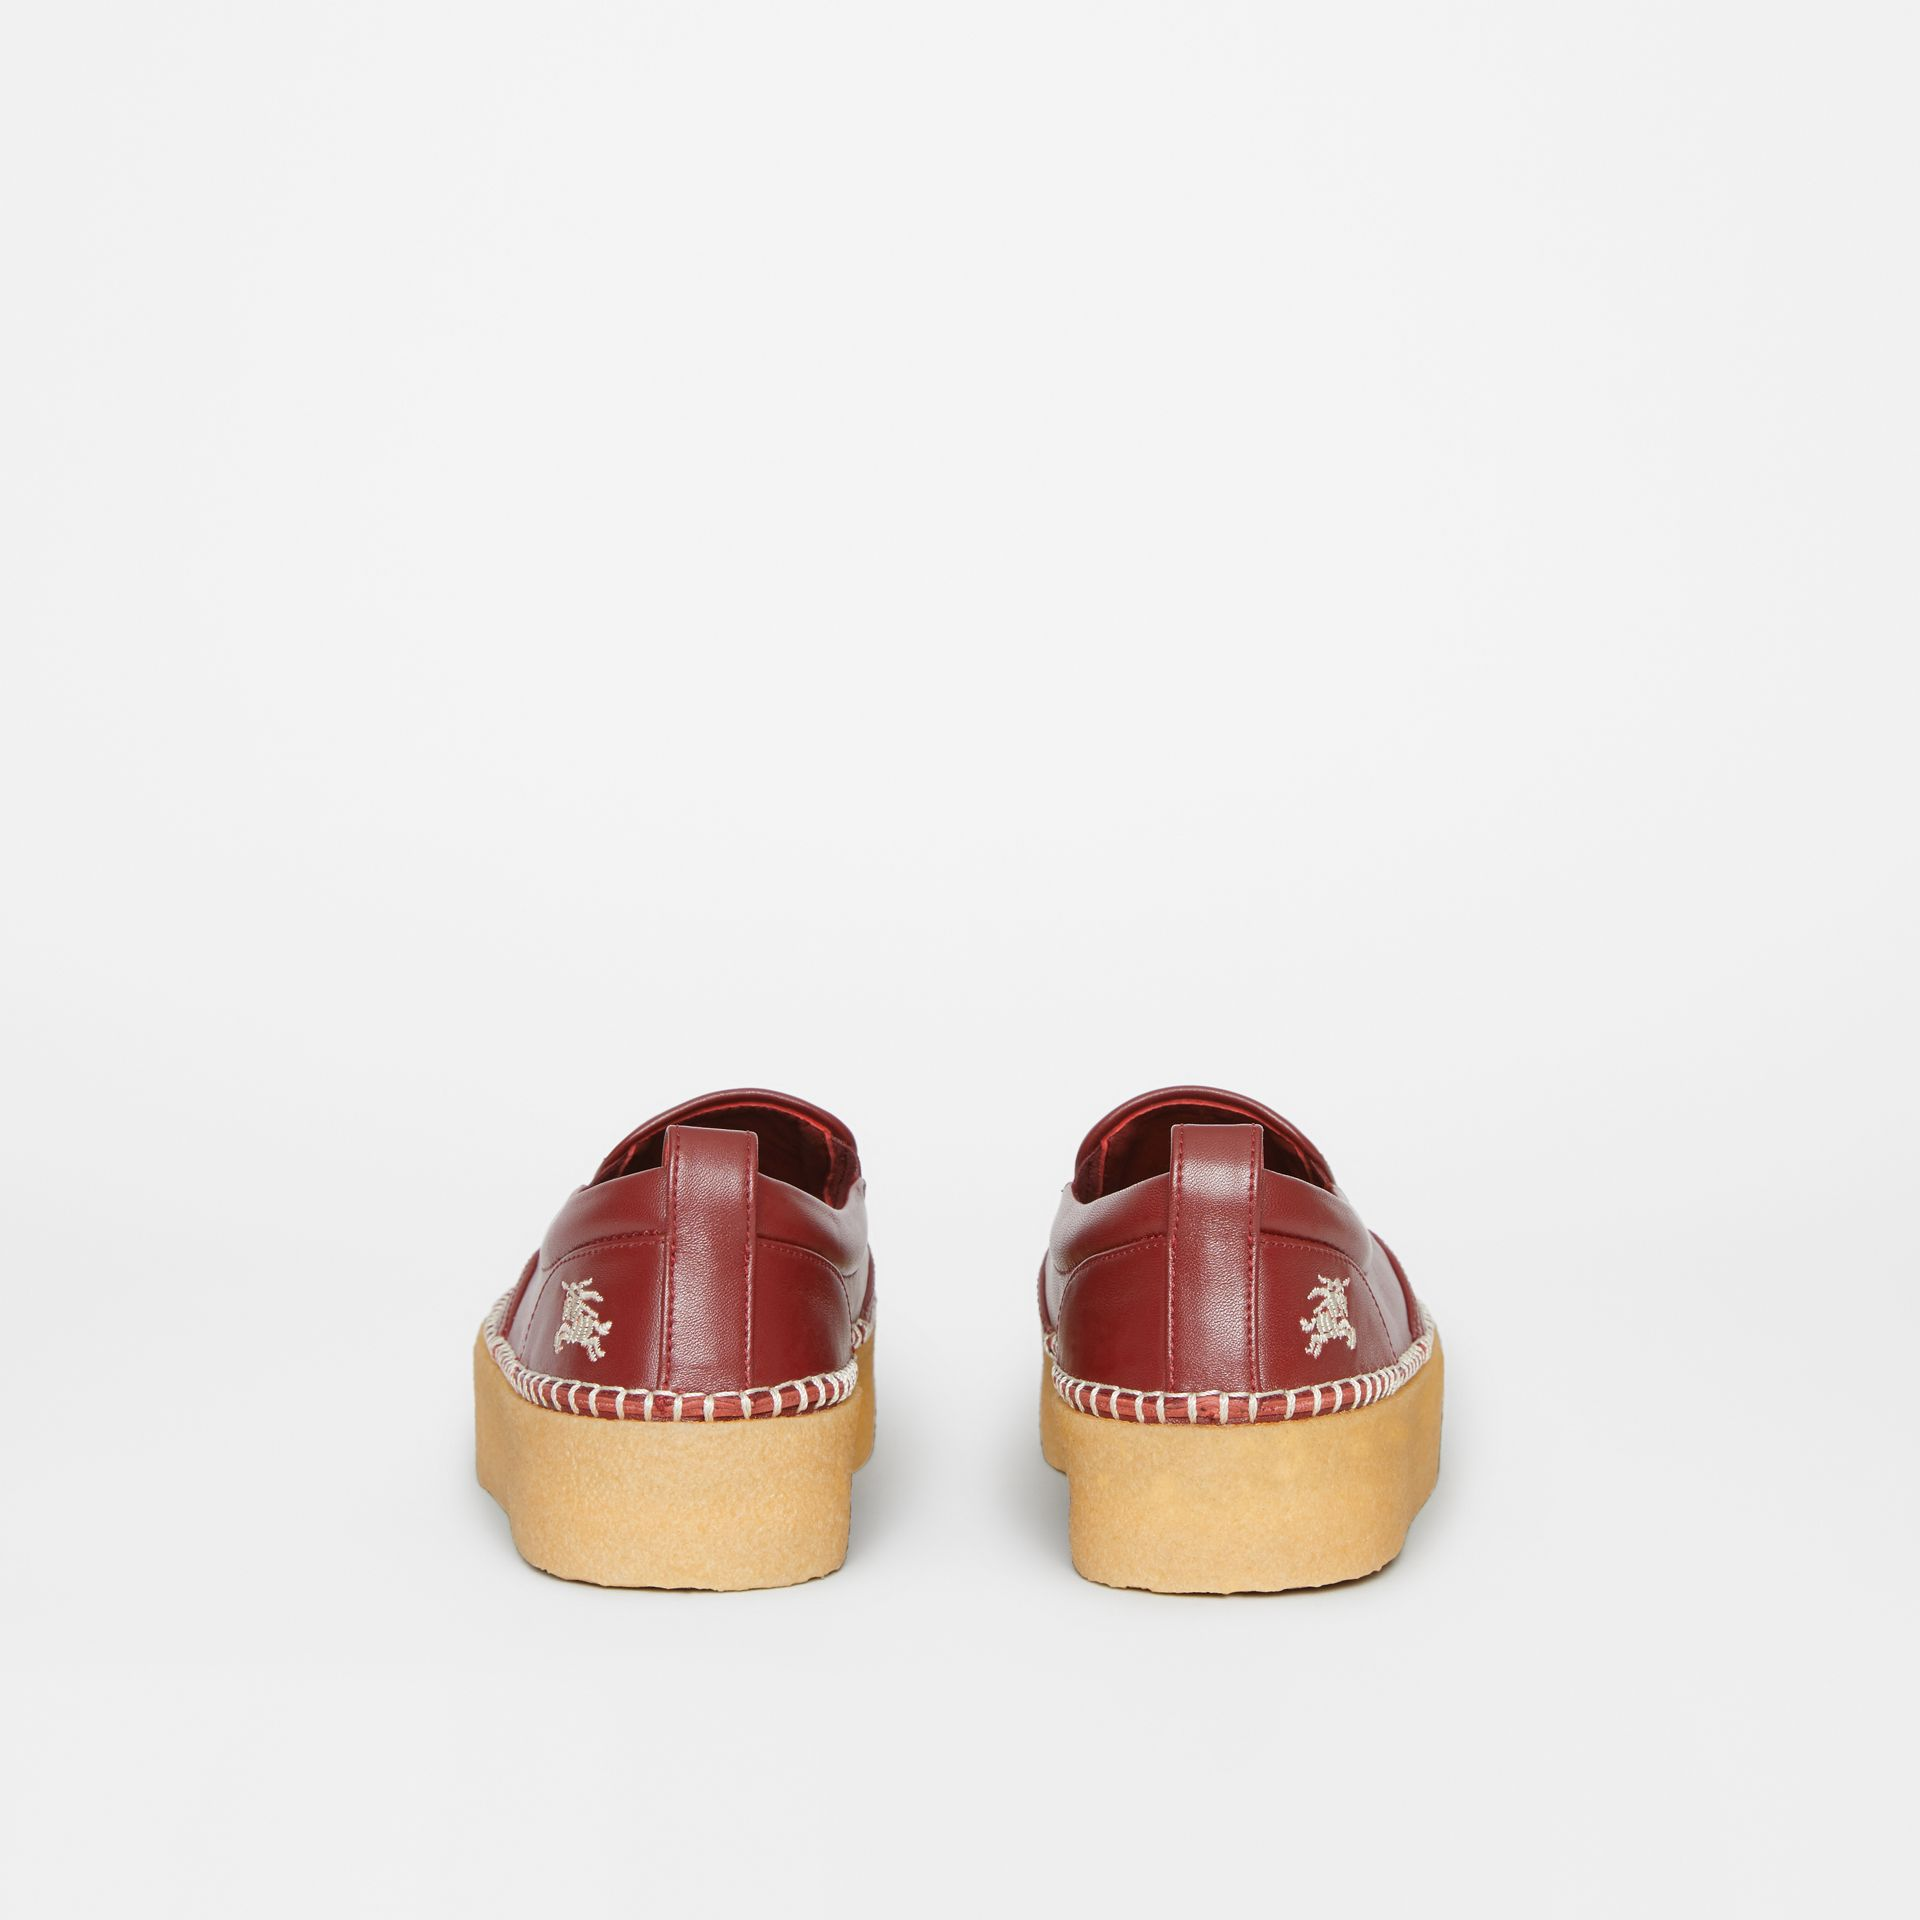 Leather Slip-on Sneakers in Bordeaux - Women | Burberry United States - gallery image 4